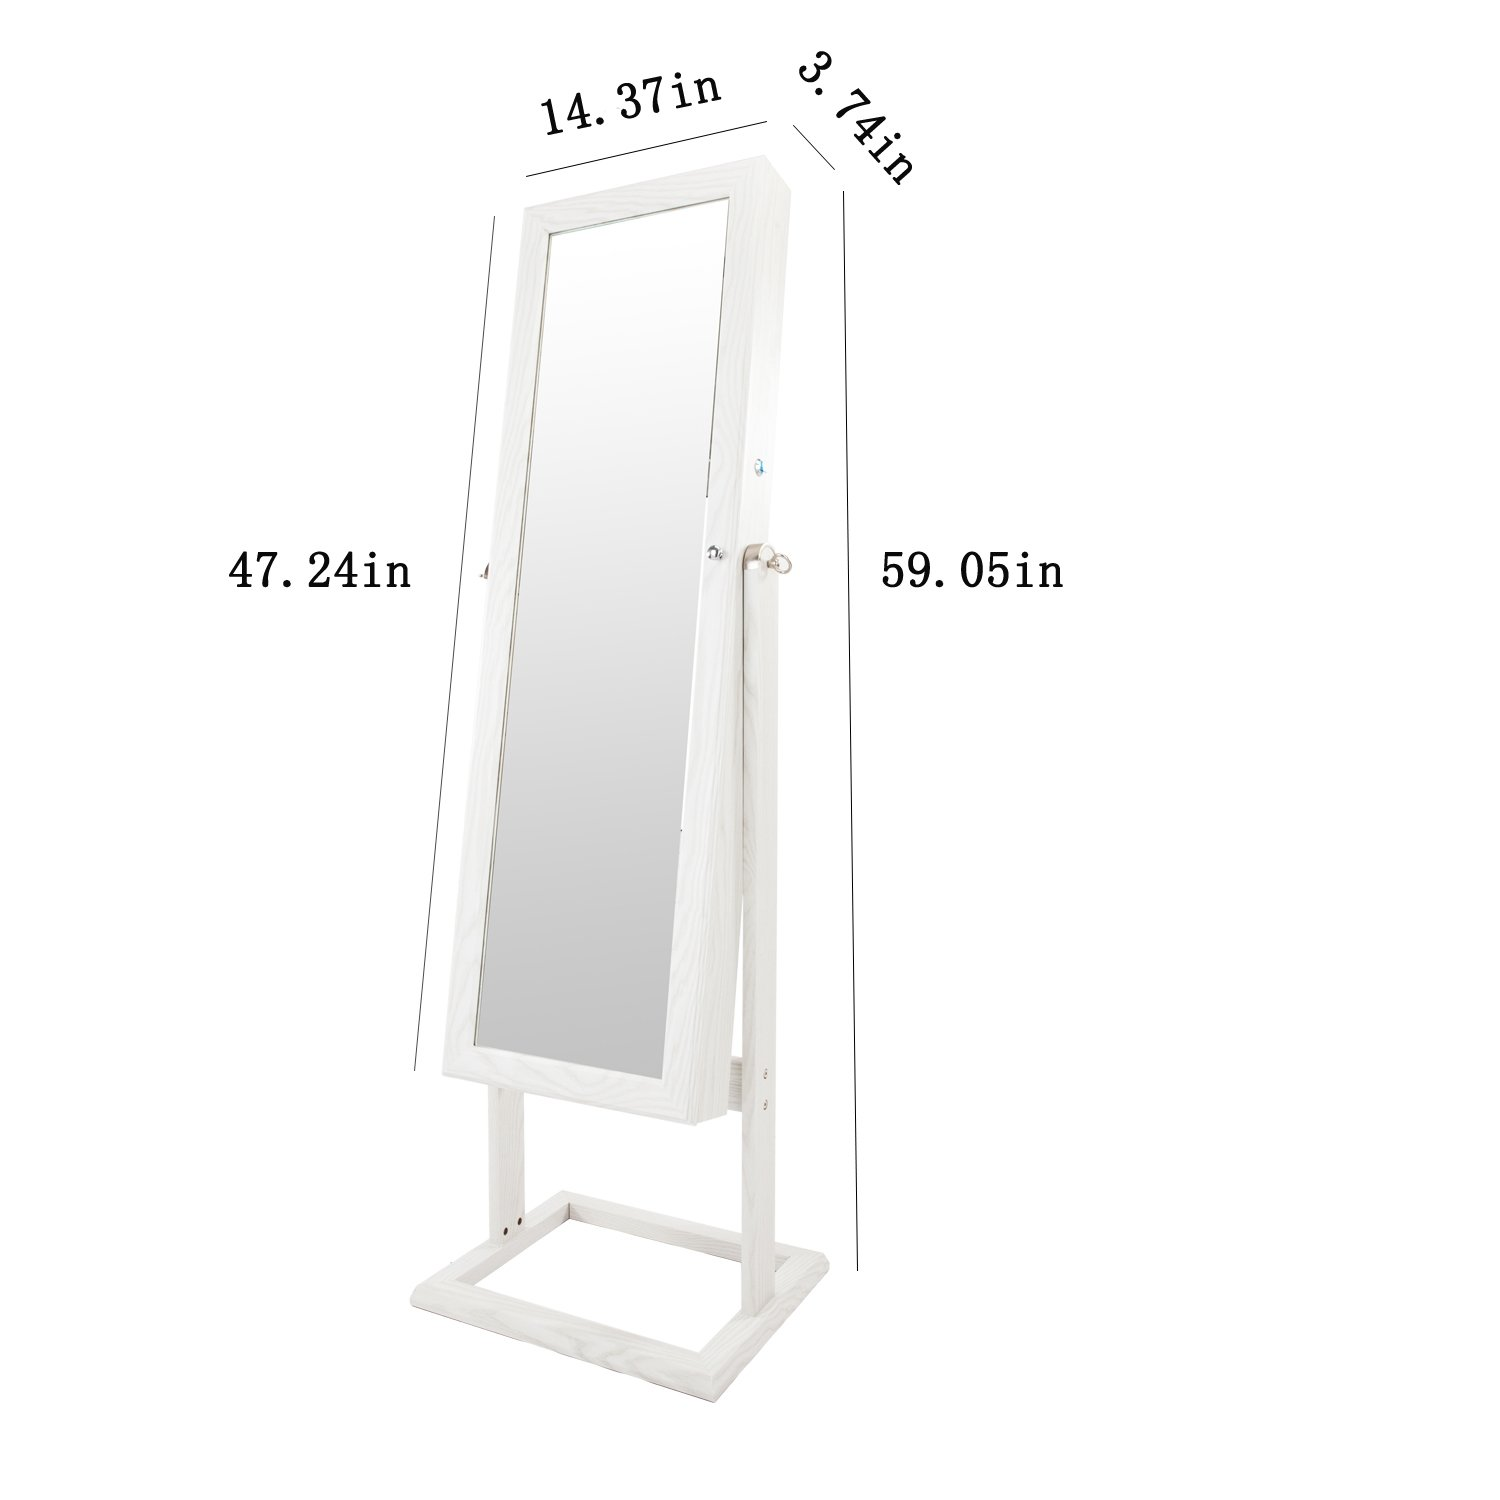 Bonnlo Jewelry Armoire Square Stand with 4 Adjustable Angle Tilting, Well Packed by styrofoam & Stiffer Covering, Lockable Heavy Duty Bedroom Make up Mirror Cabinet Organizer Closet by Bonnlo (Image #7)